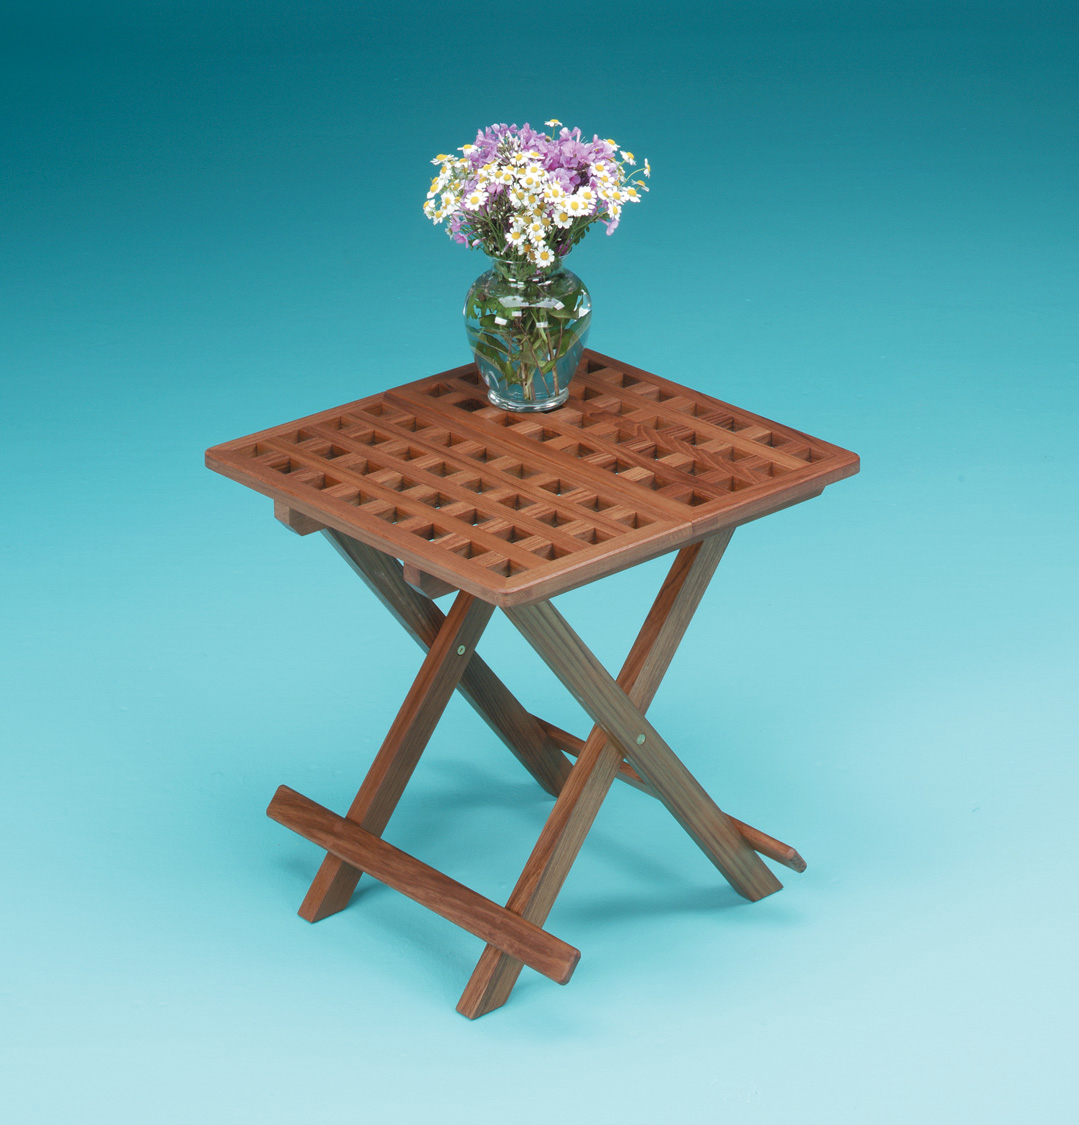 Whitecap 60030 teak grate top fold away table whitecap 60030 boat tables galley cabin - Fold away table ...